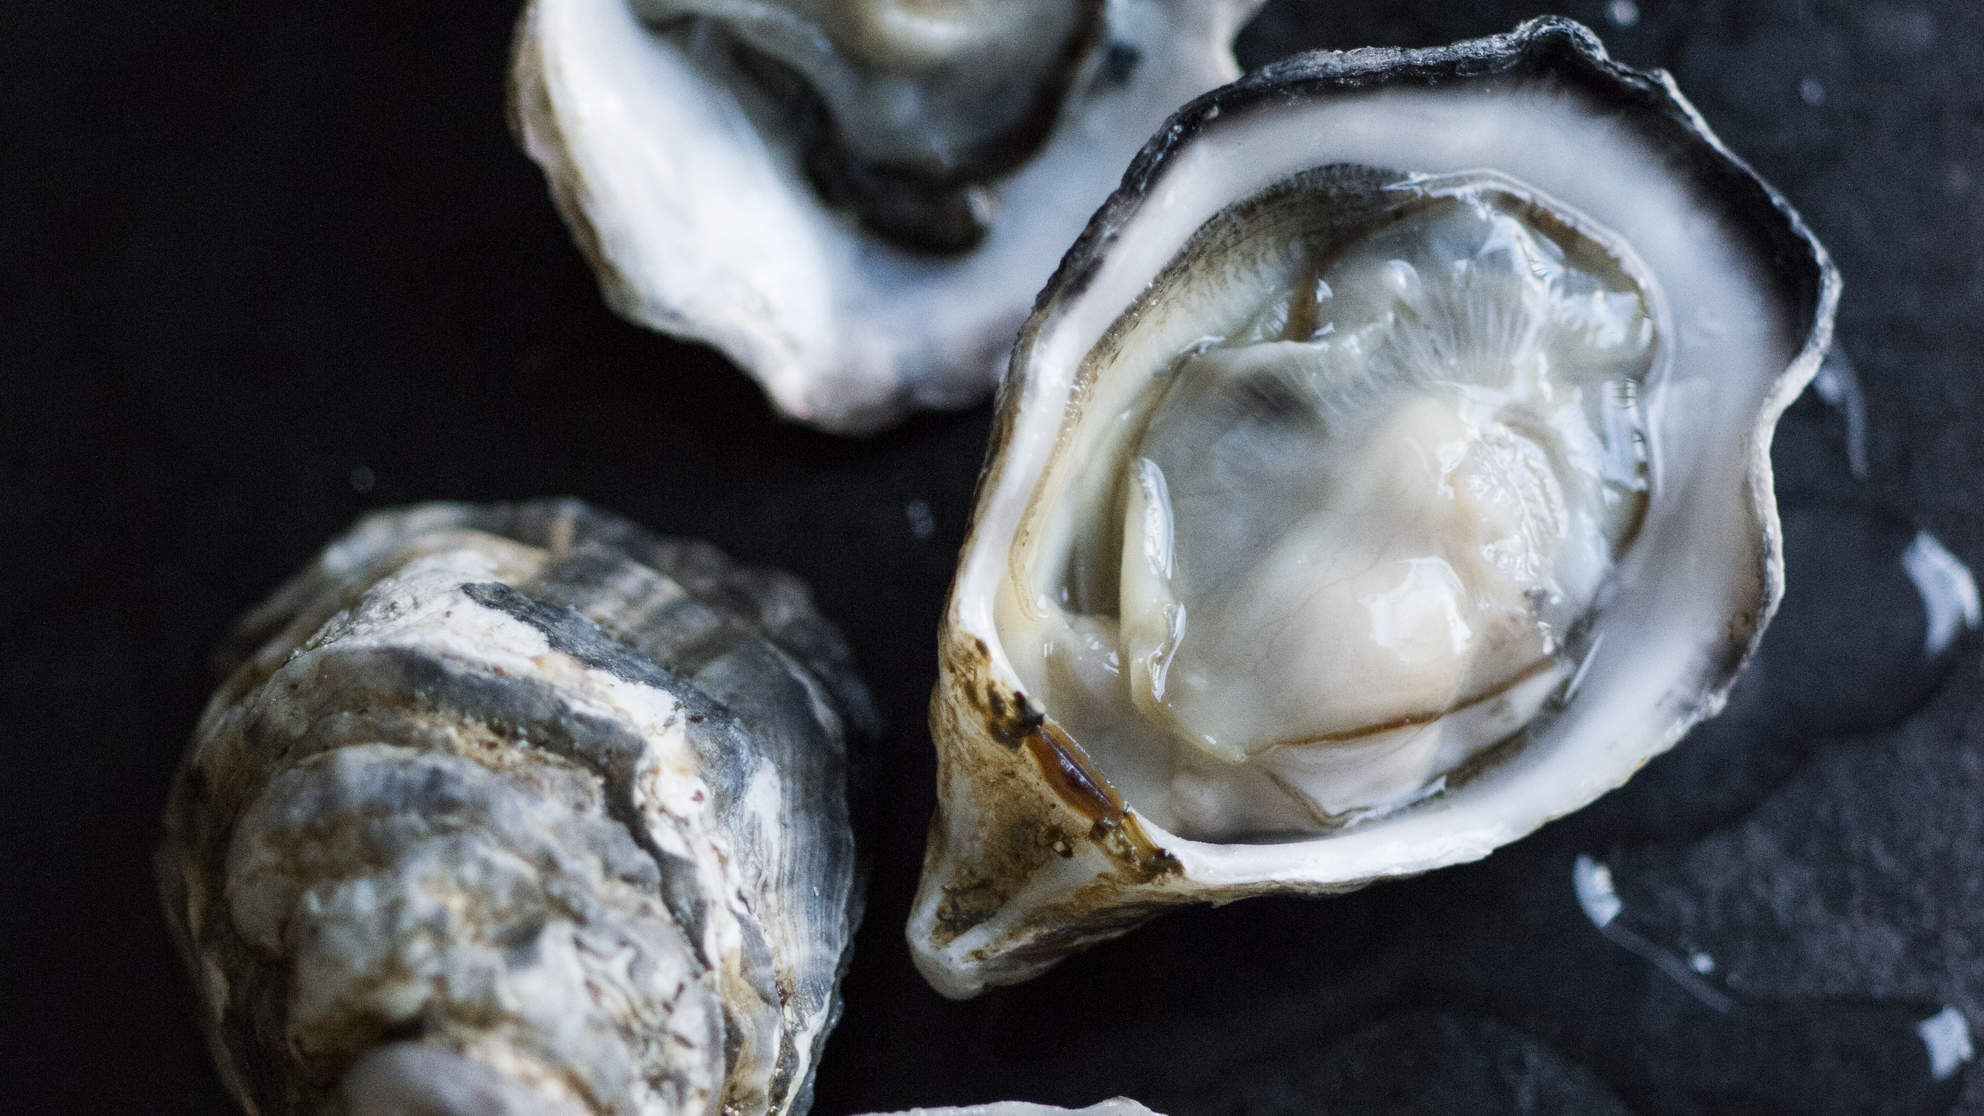 how to safely eat raw oysters and avoid vibrio bacteria - health